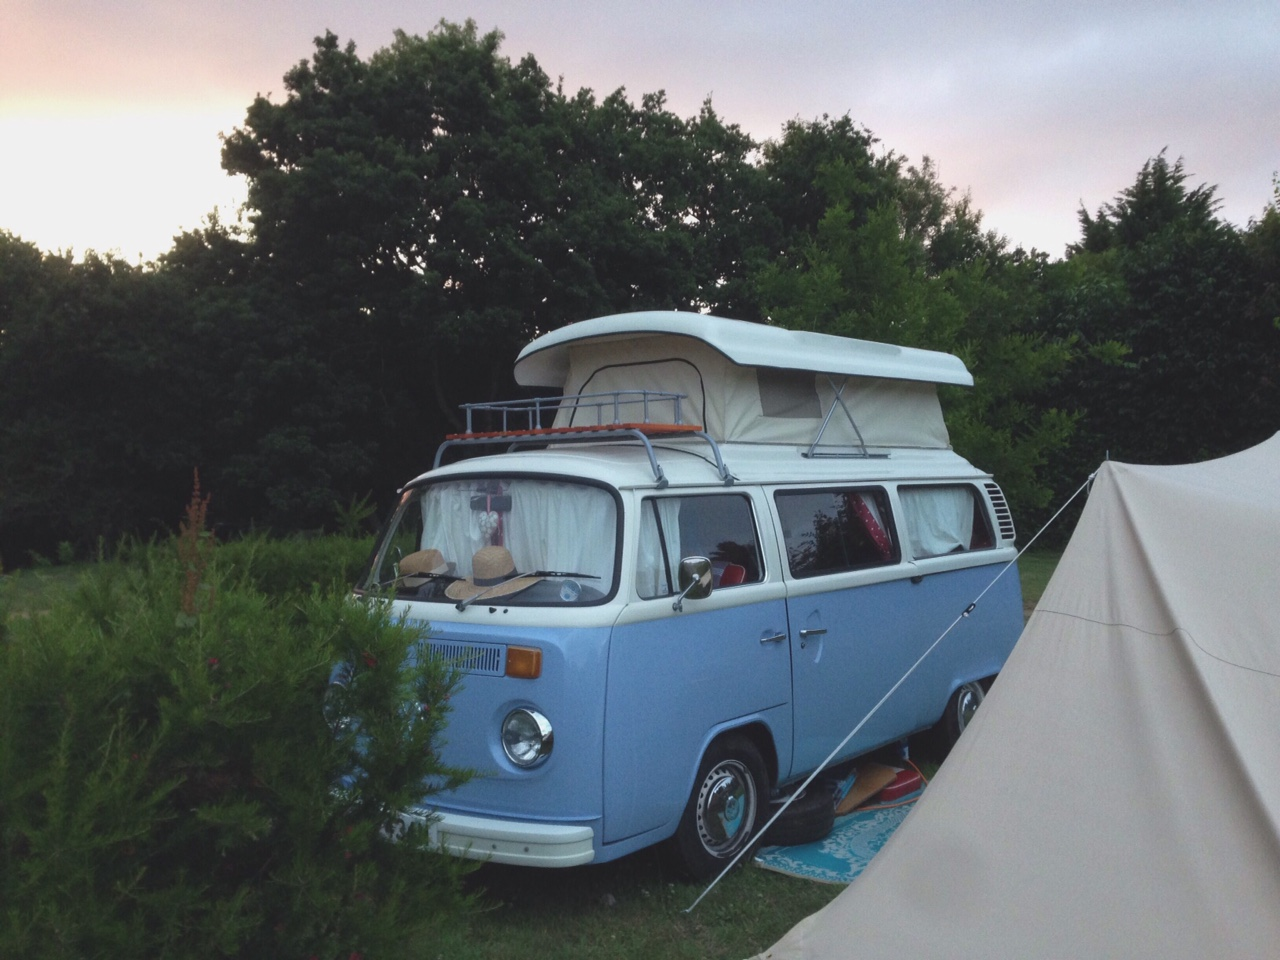 Our Brittany set-up at dusk on a particularly picturesque evening